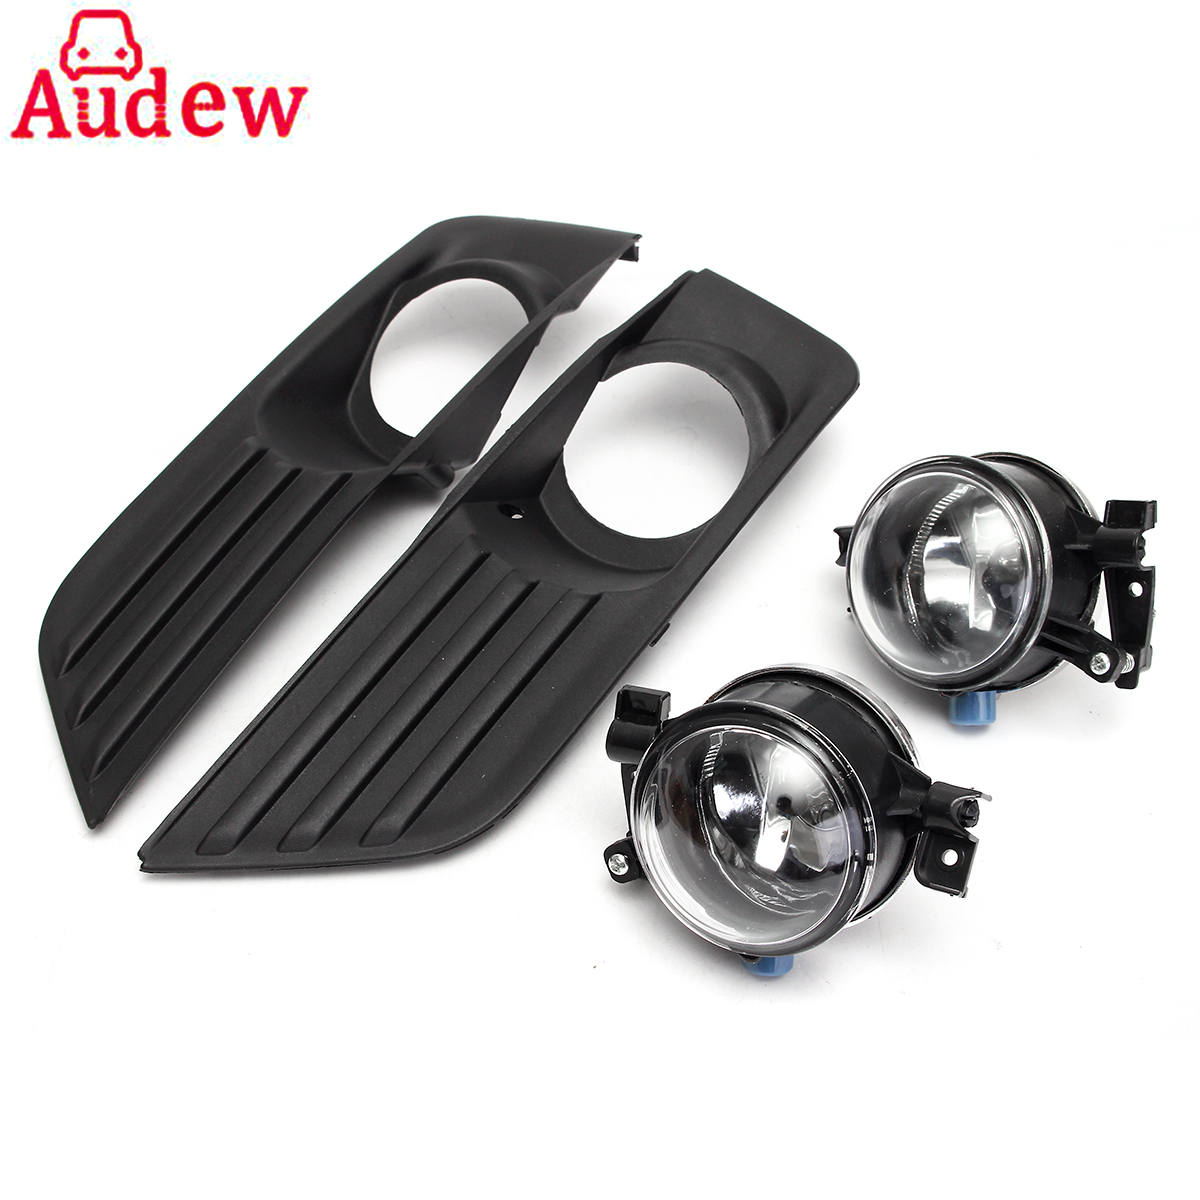 2Pcs Car Bumper Front Fog Lights Lamp + Cover Grille Kit Set For Ford/Focus 2005-2007 1set front chrome housing clear lens driving bumper fog light lamp grille cover switch line kit for 2007 2009 toyota camry